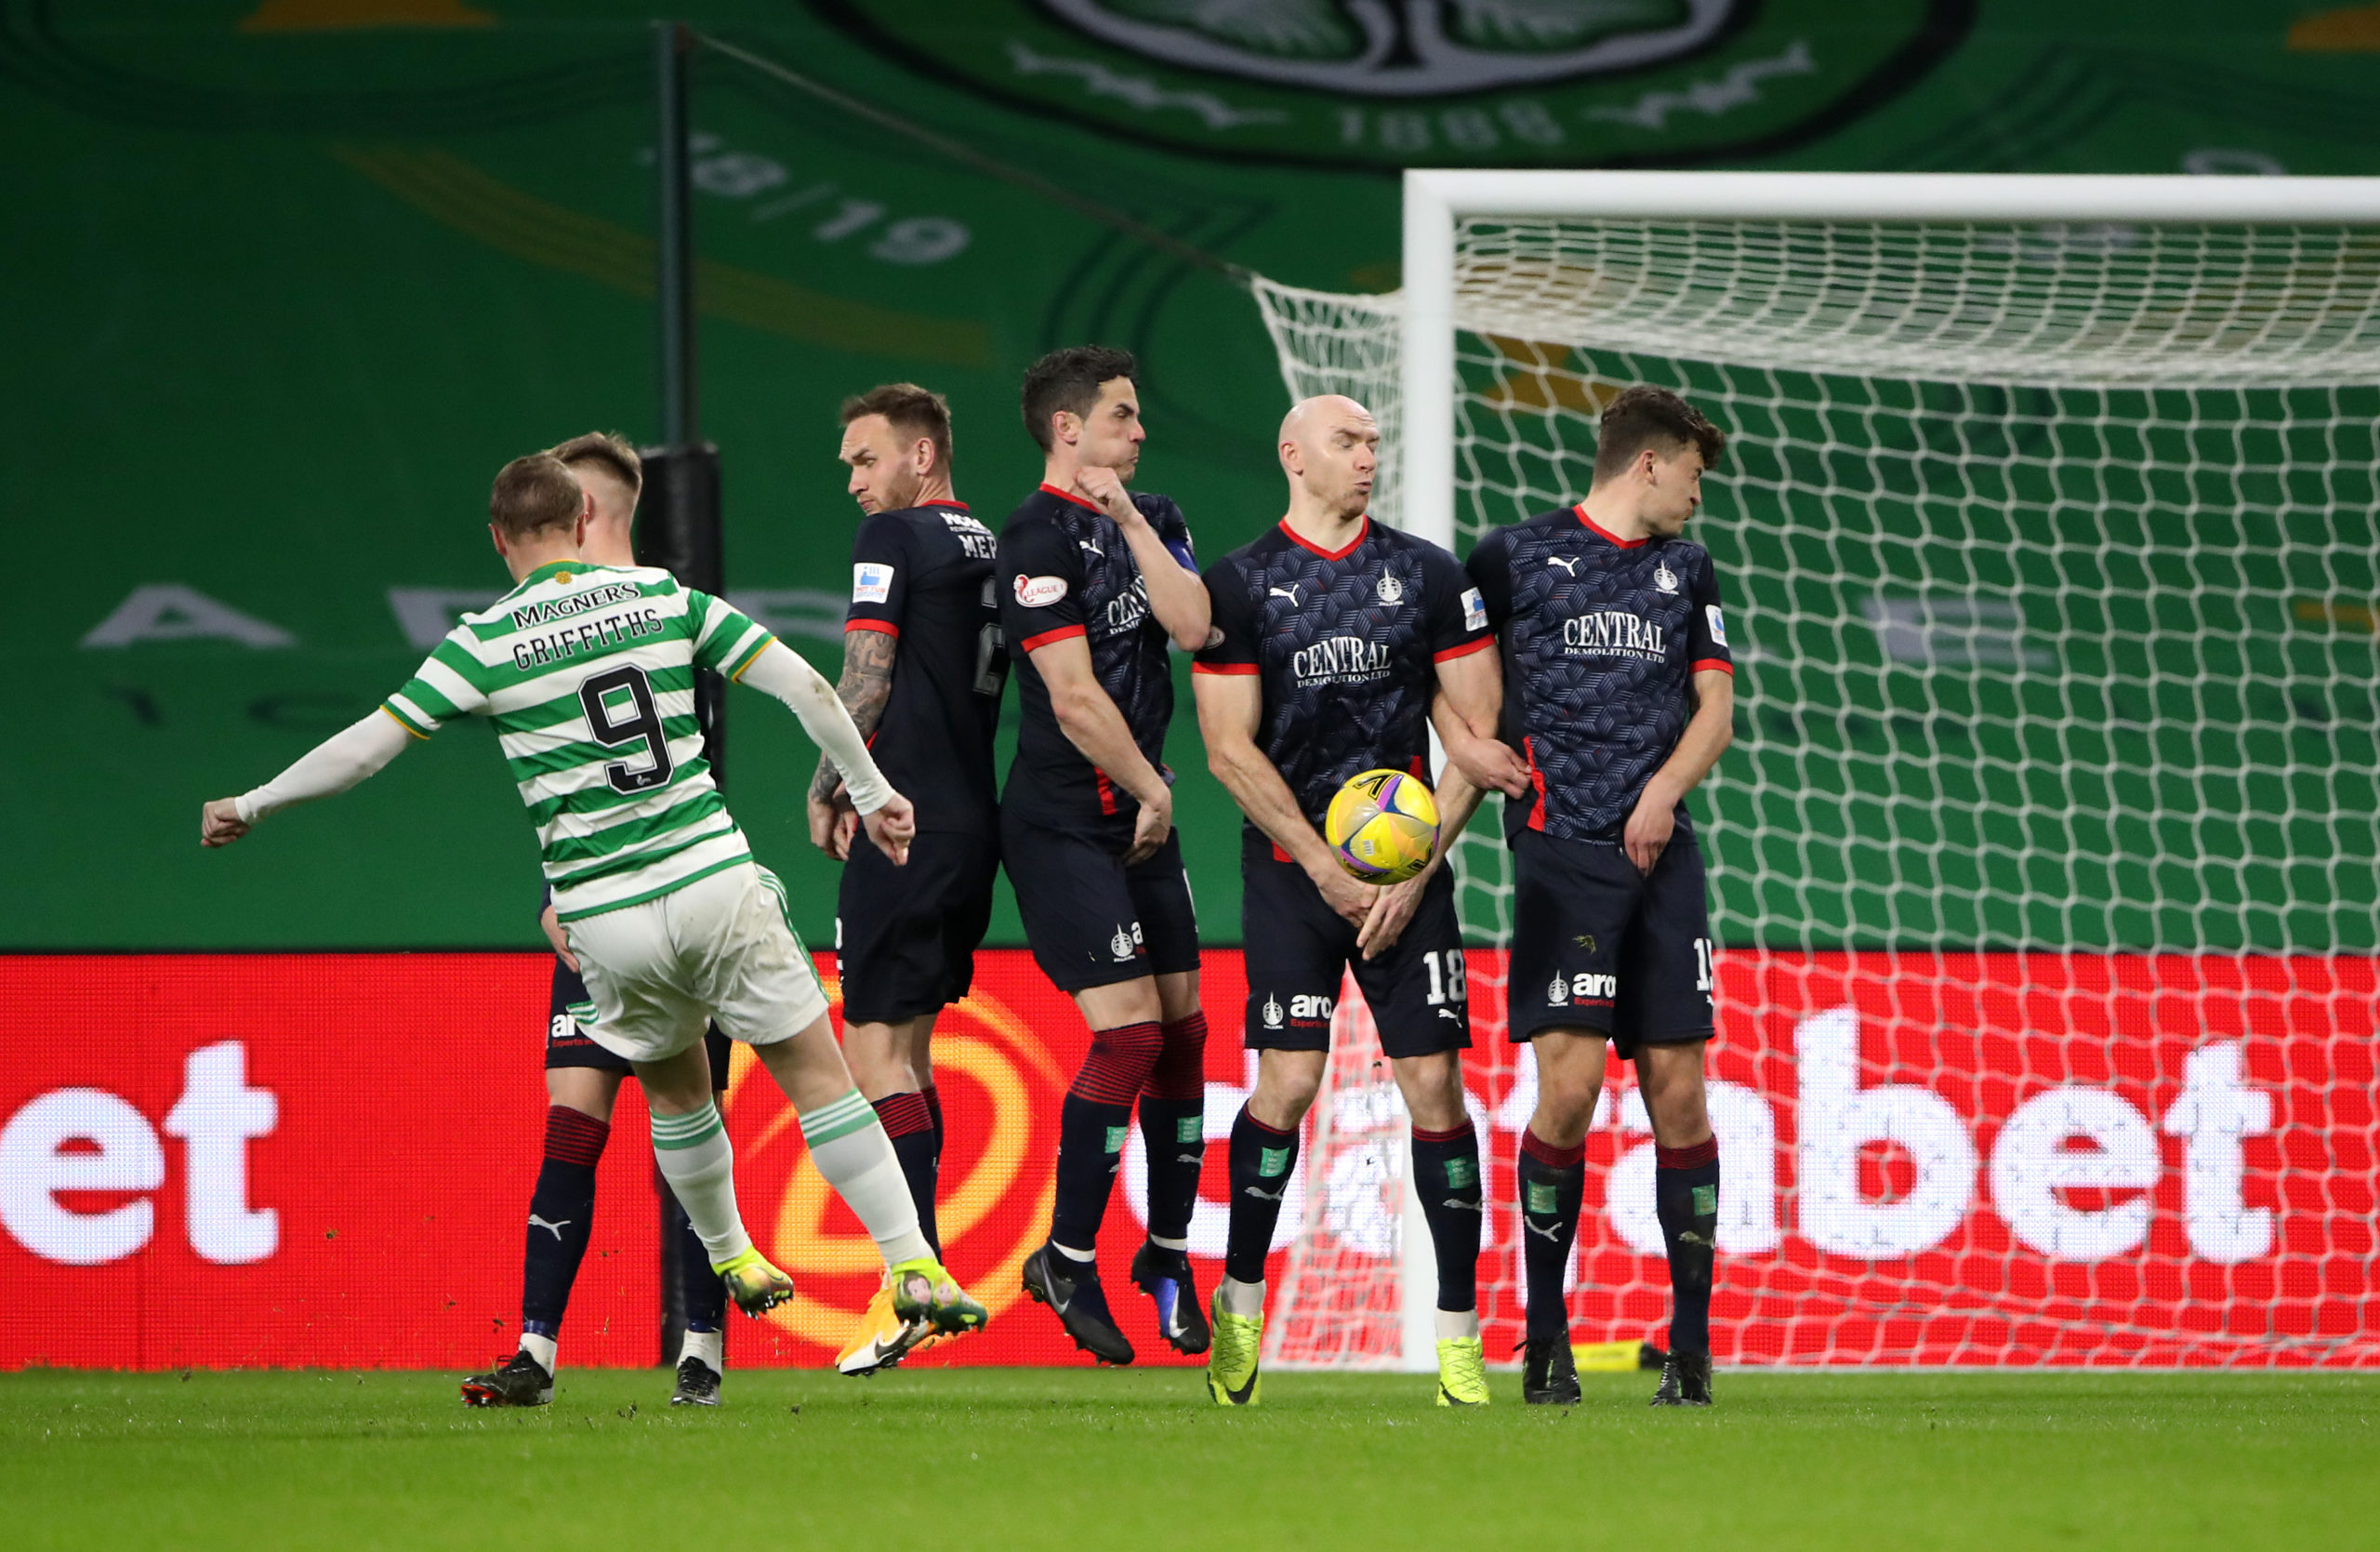 Celtic v Falkirk - William Hill Scottish Cup Third Round